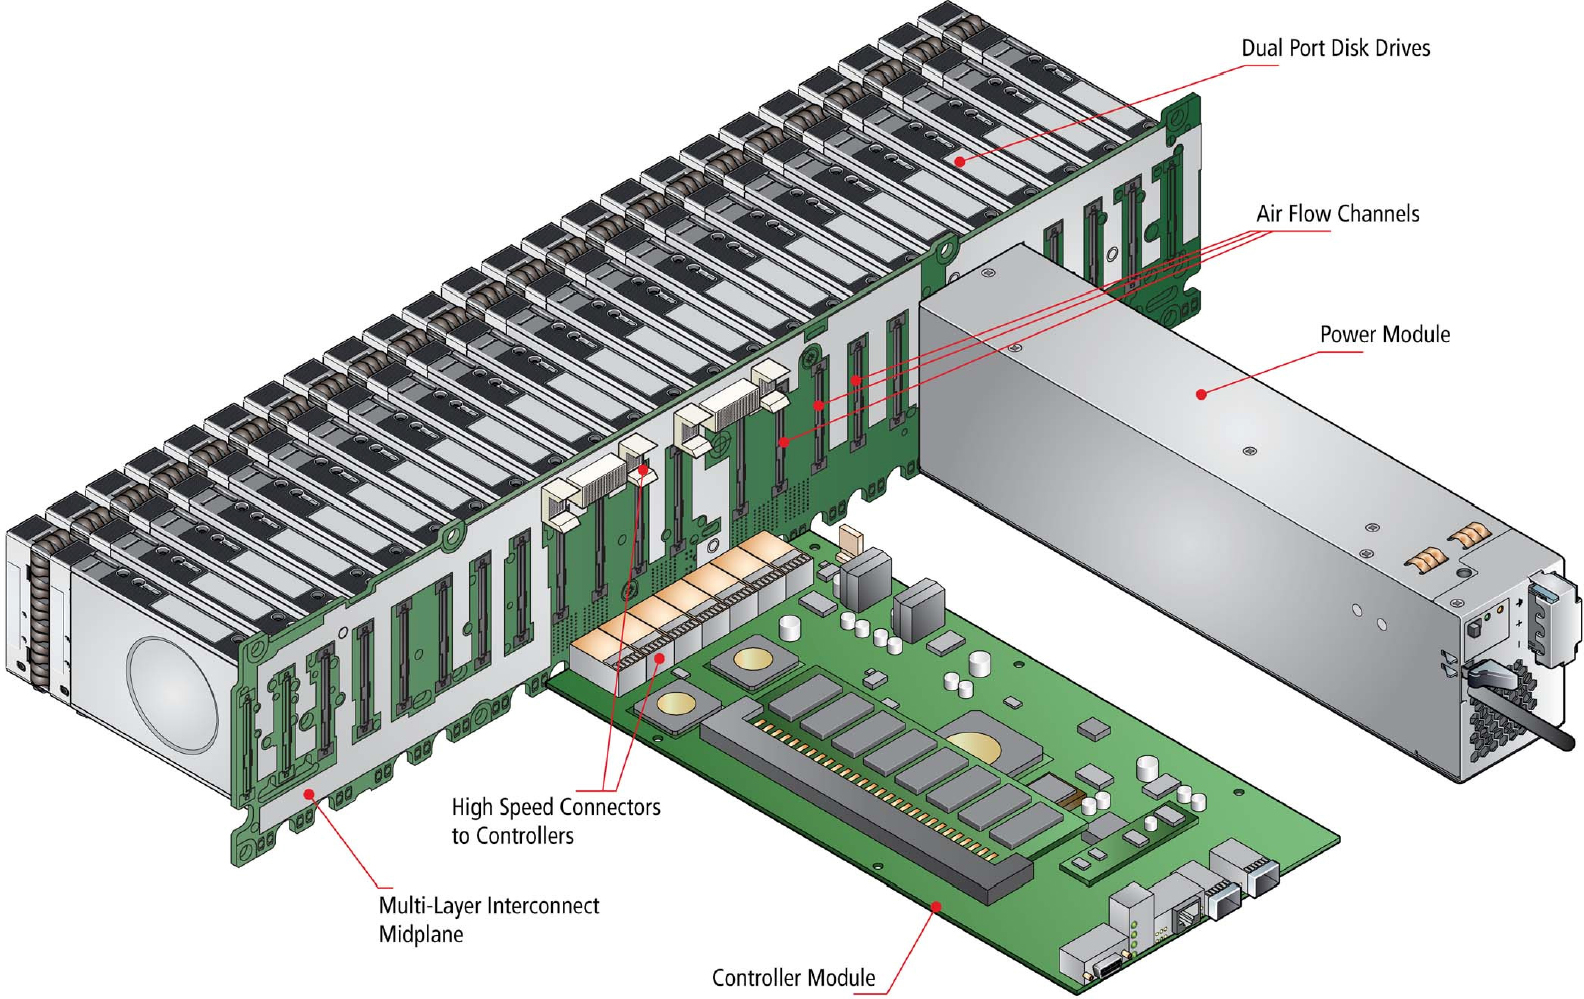 Typical Data Storage Array With Hard Disk Drives Connected To One Side Of The Midplane And Controller Boards Supplies Other